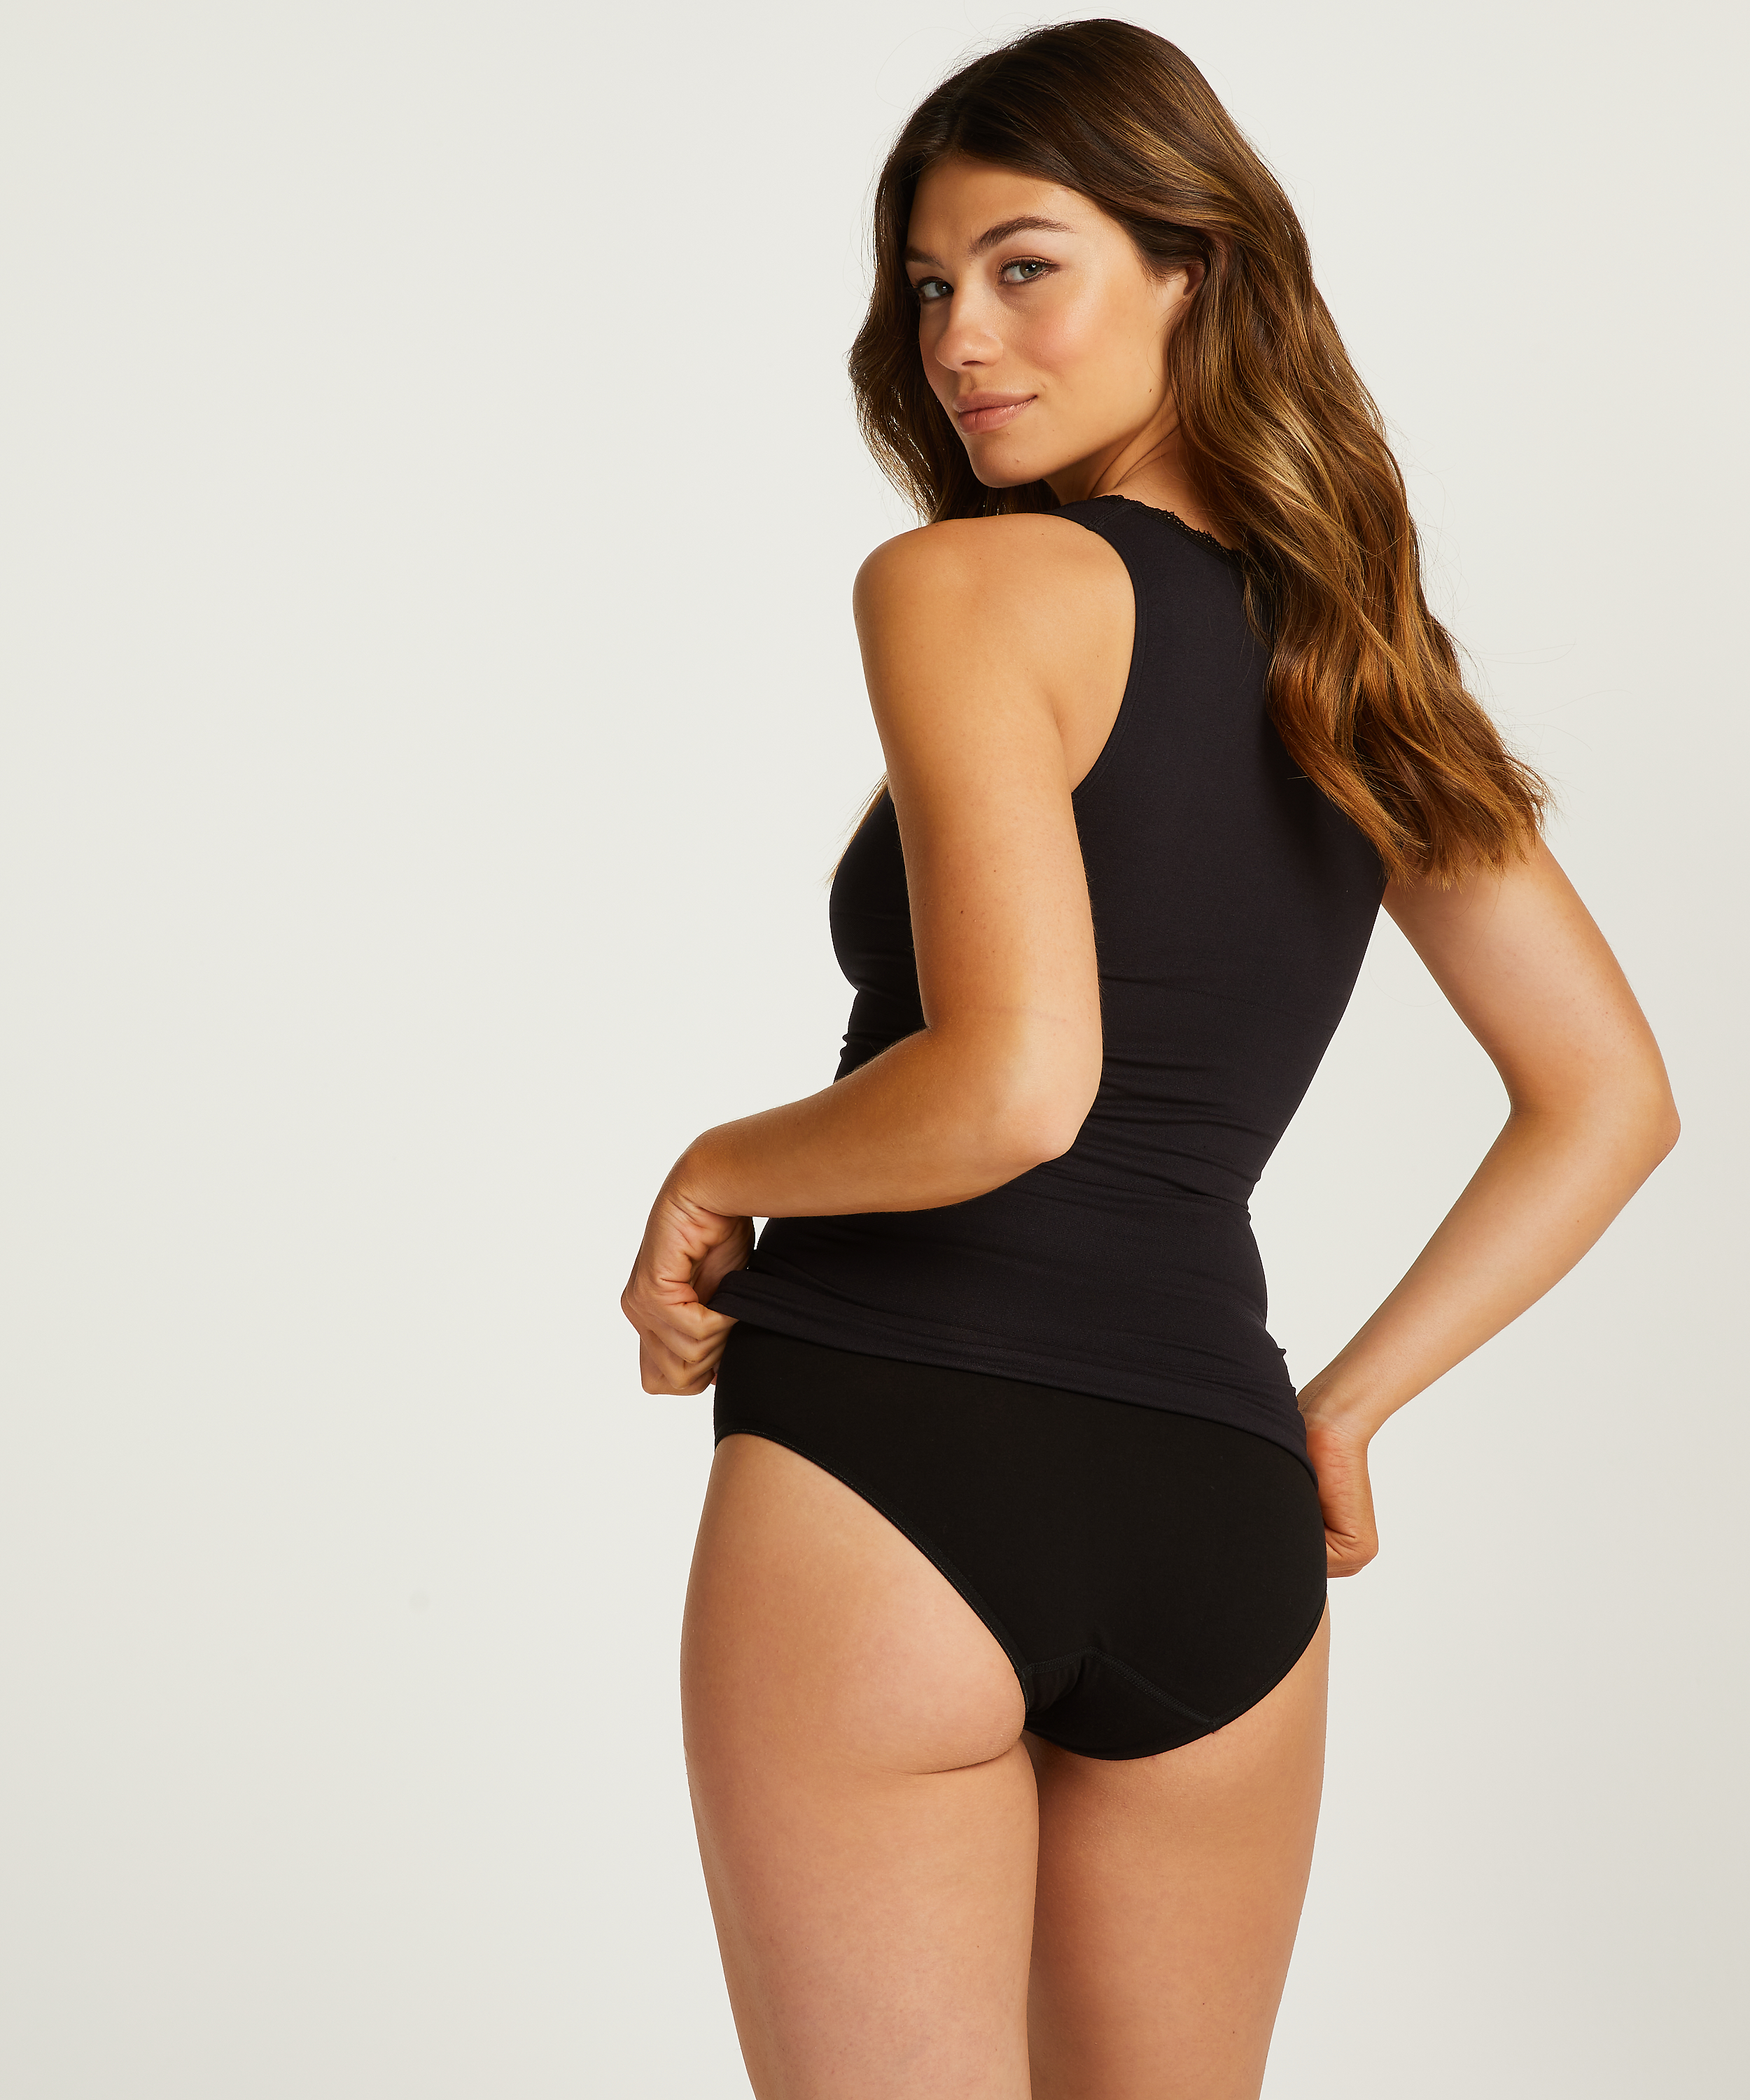 Firming top - Level 2, Black, main